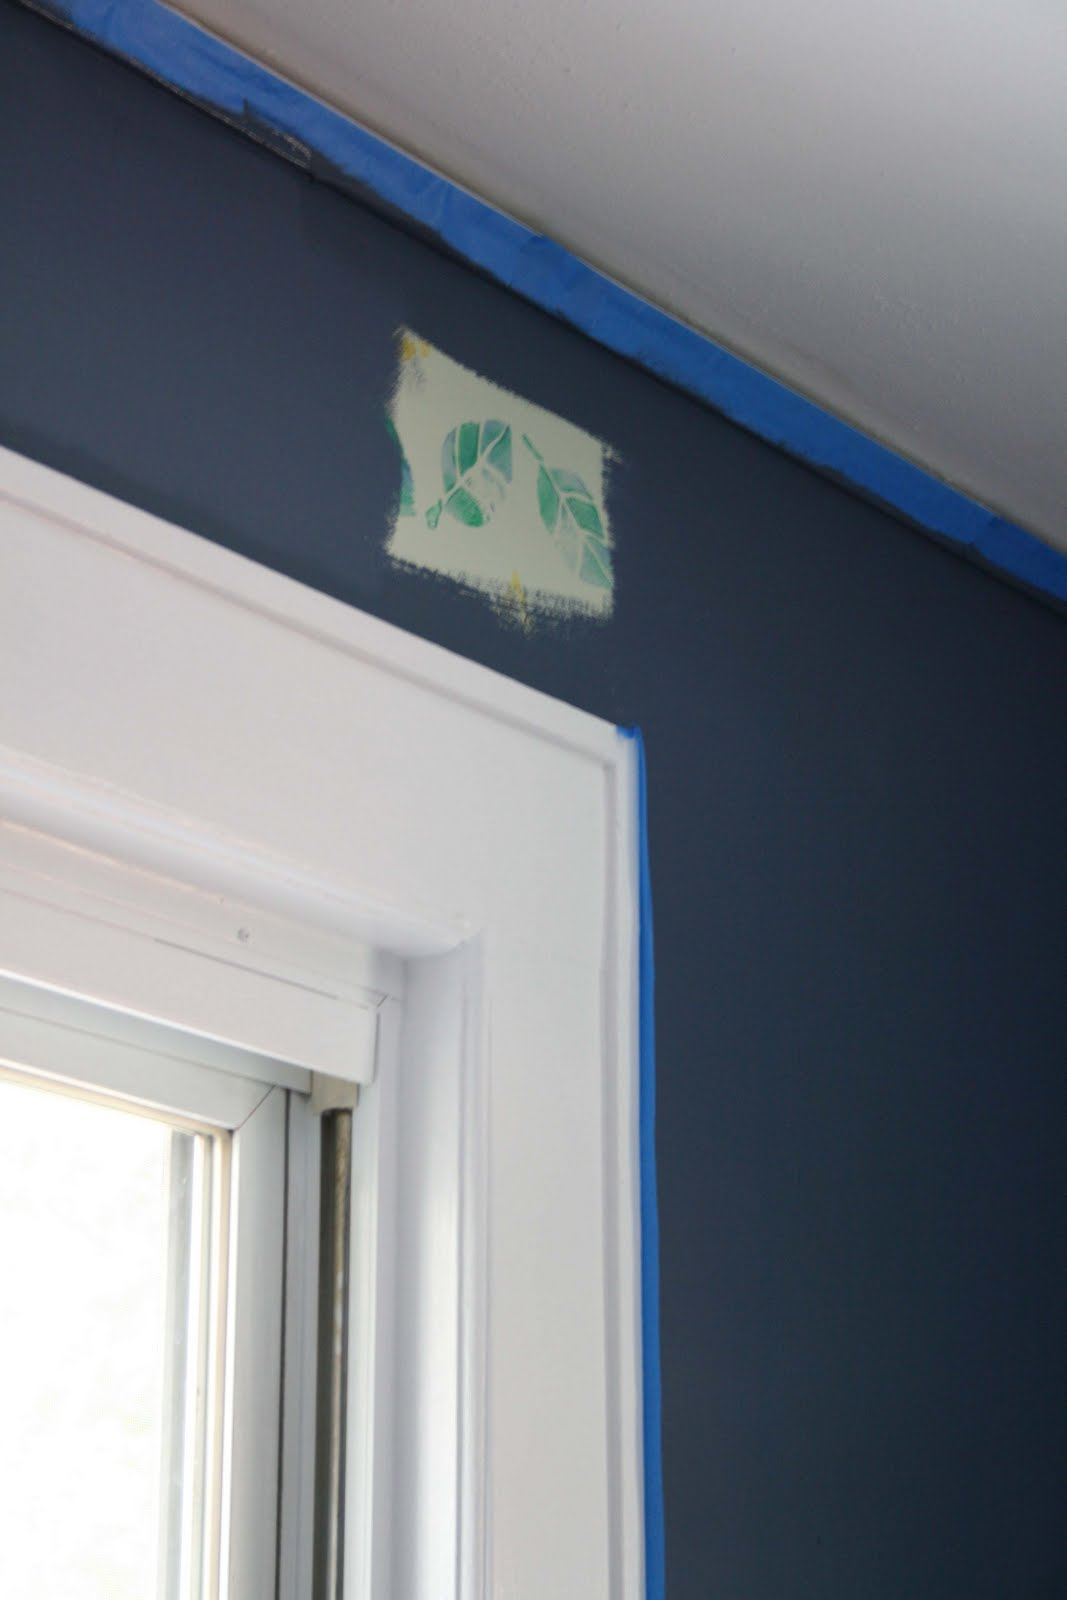 How Long Should I Wait After Painting My Room